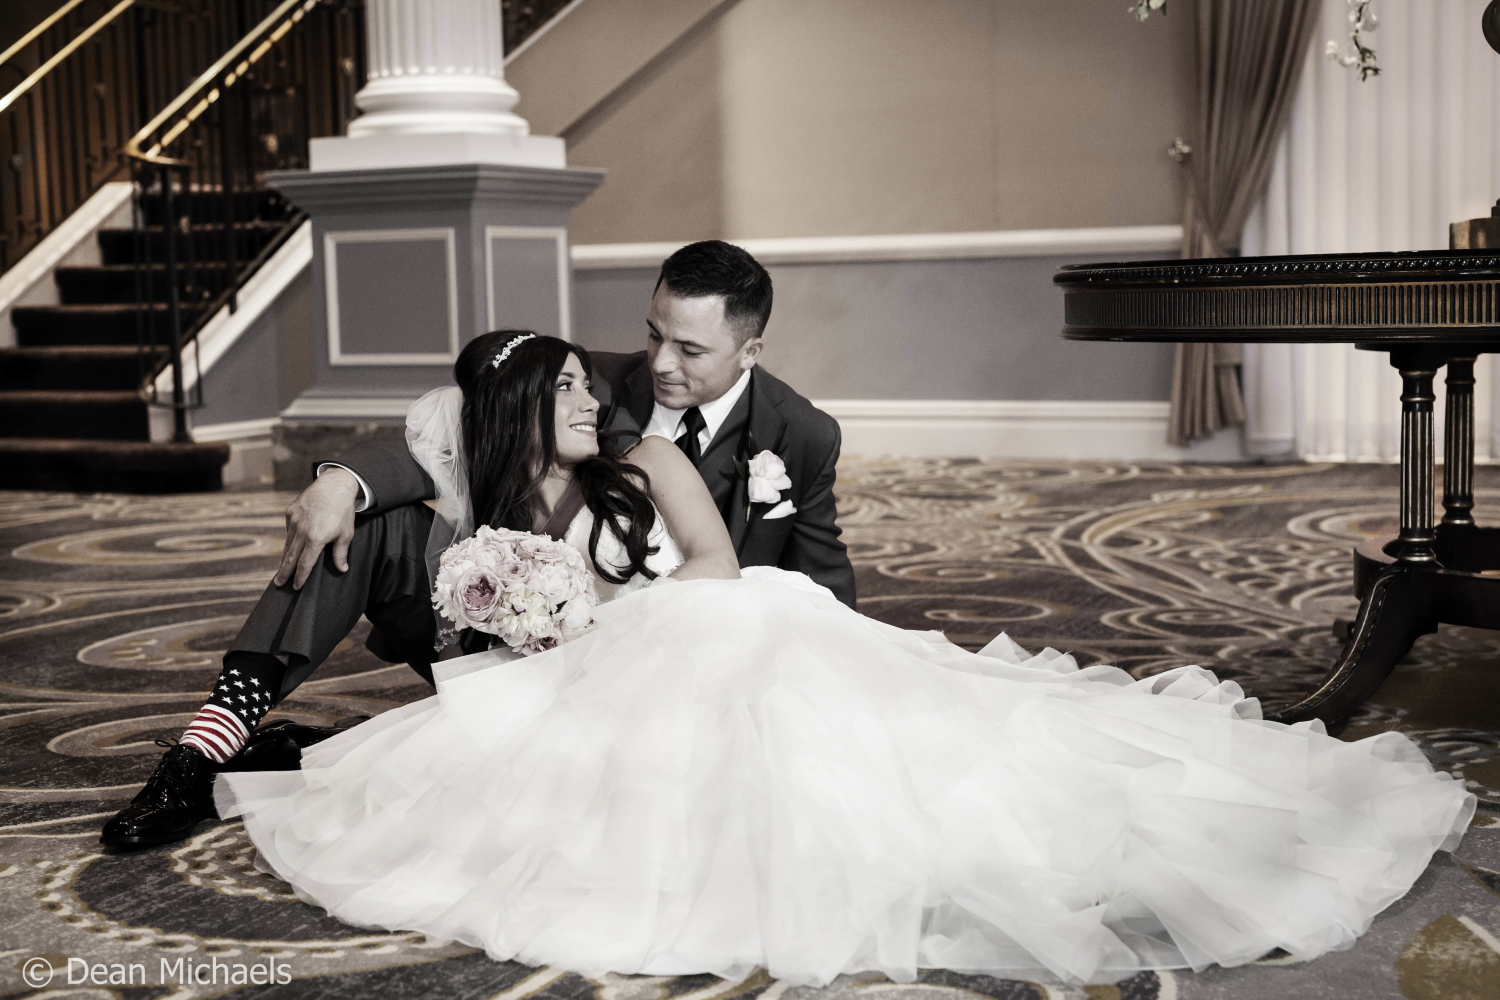 wedding-photographer-gallery-2-8I3BMLP3BD6B.jpg